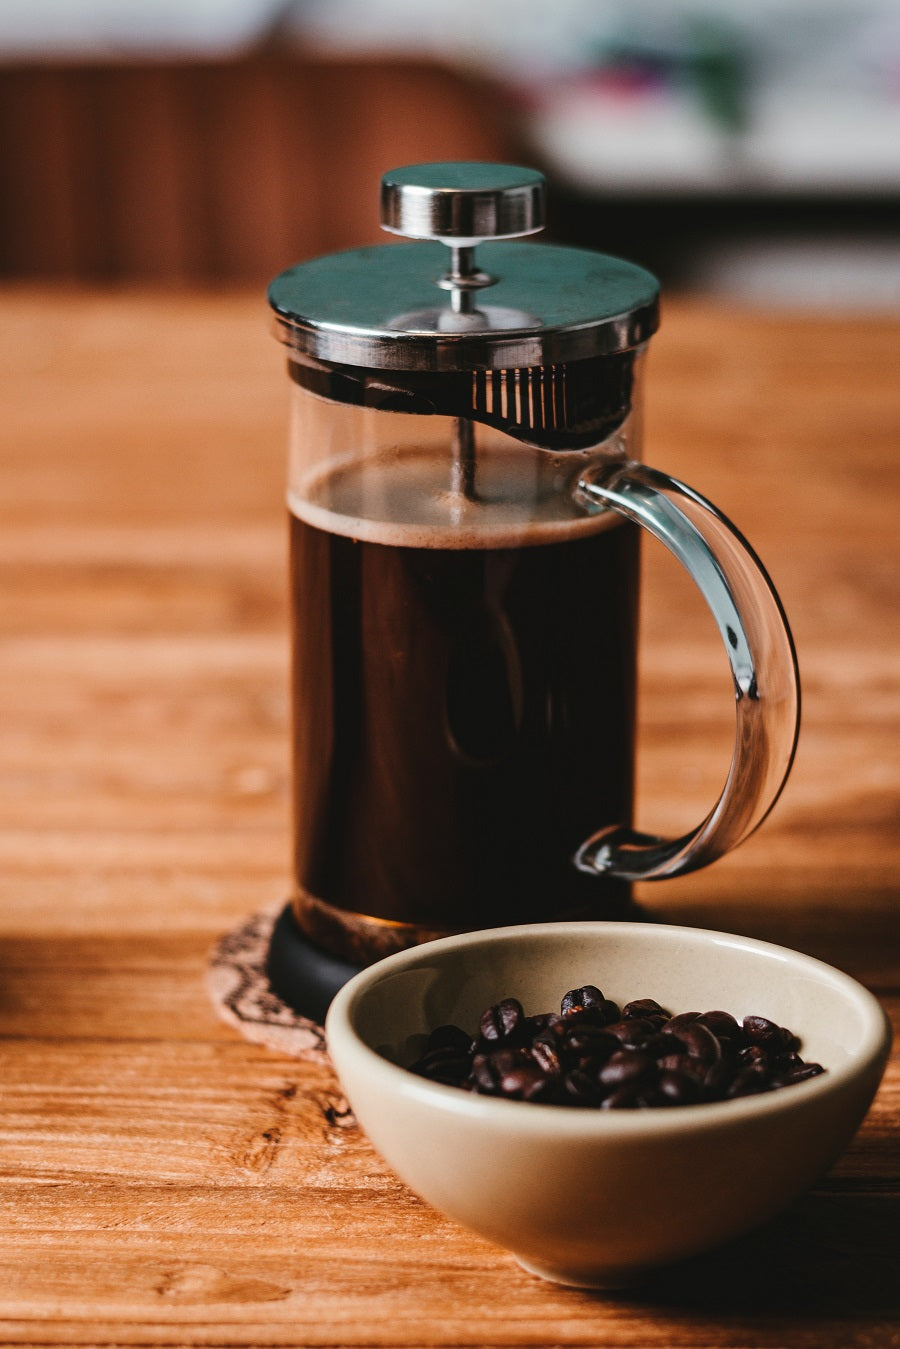 French Press next to white bowl with coffee beans in it